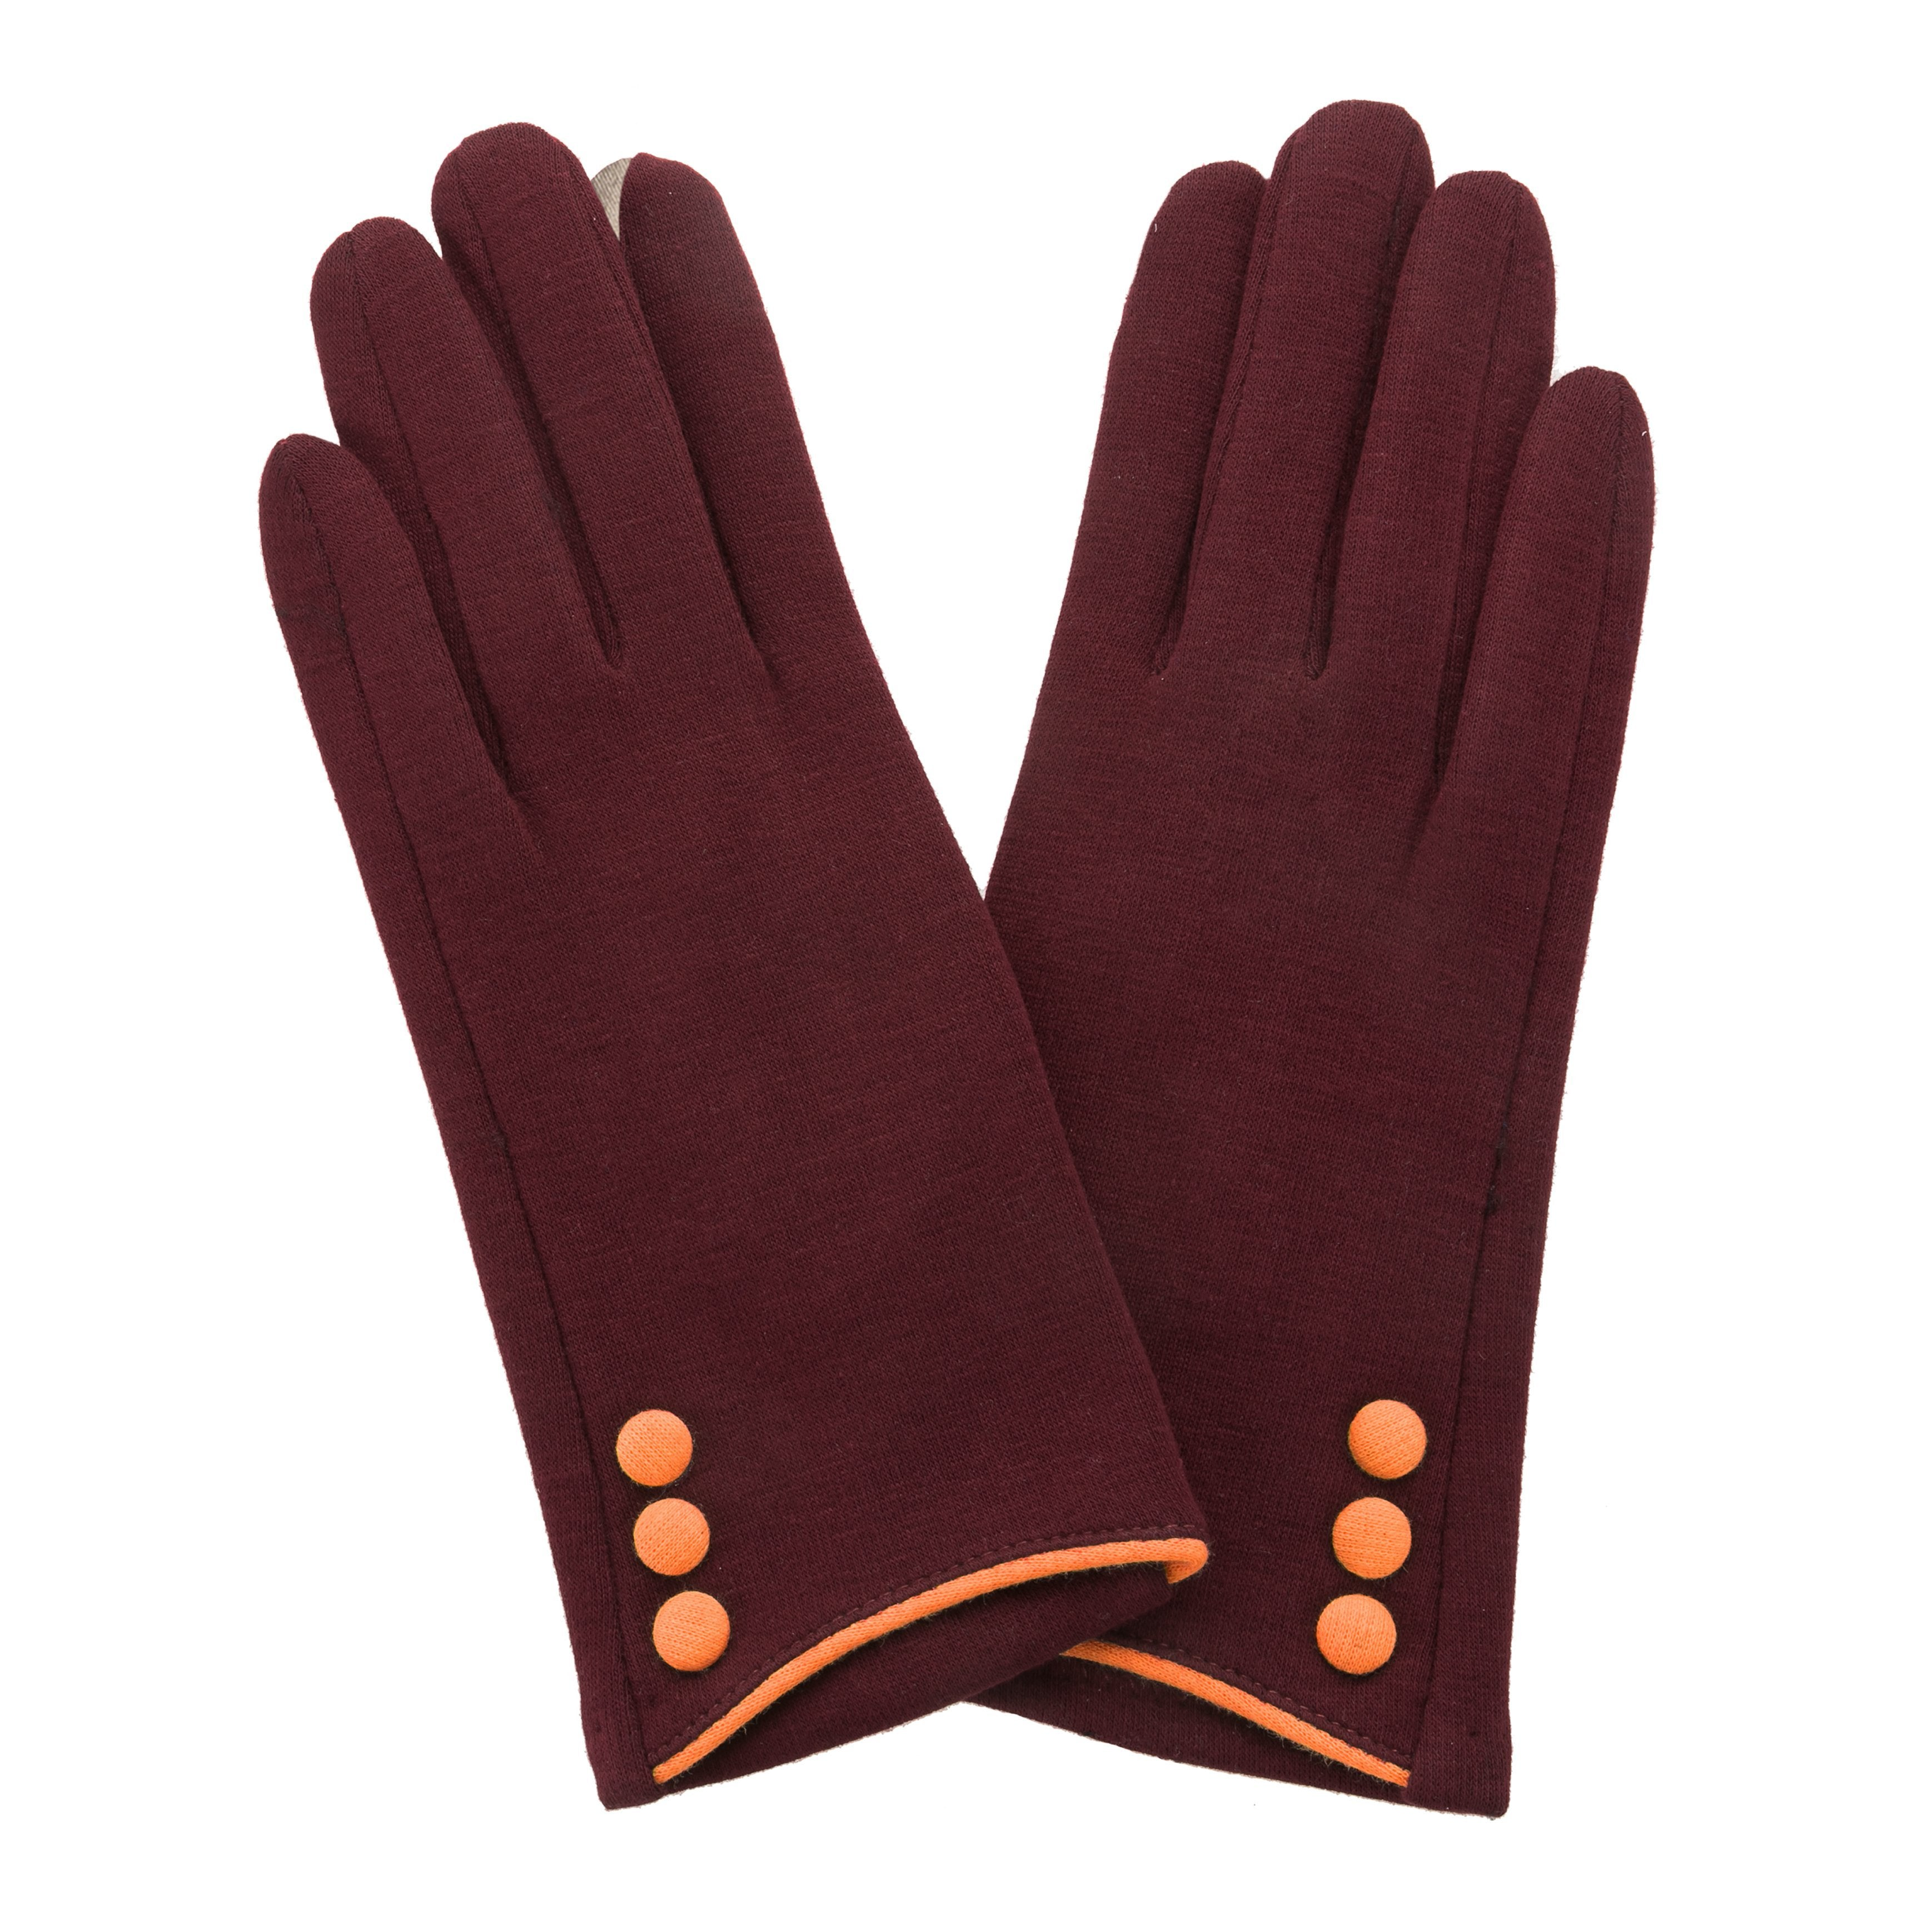 Maroon, smart screen fingertip gloves with orange buttons and trim.